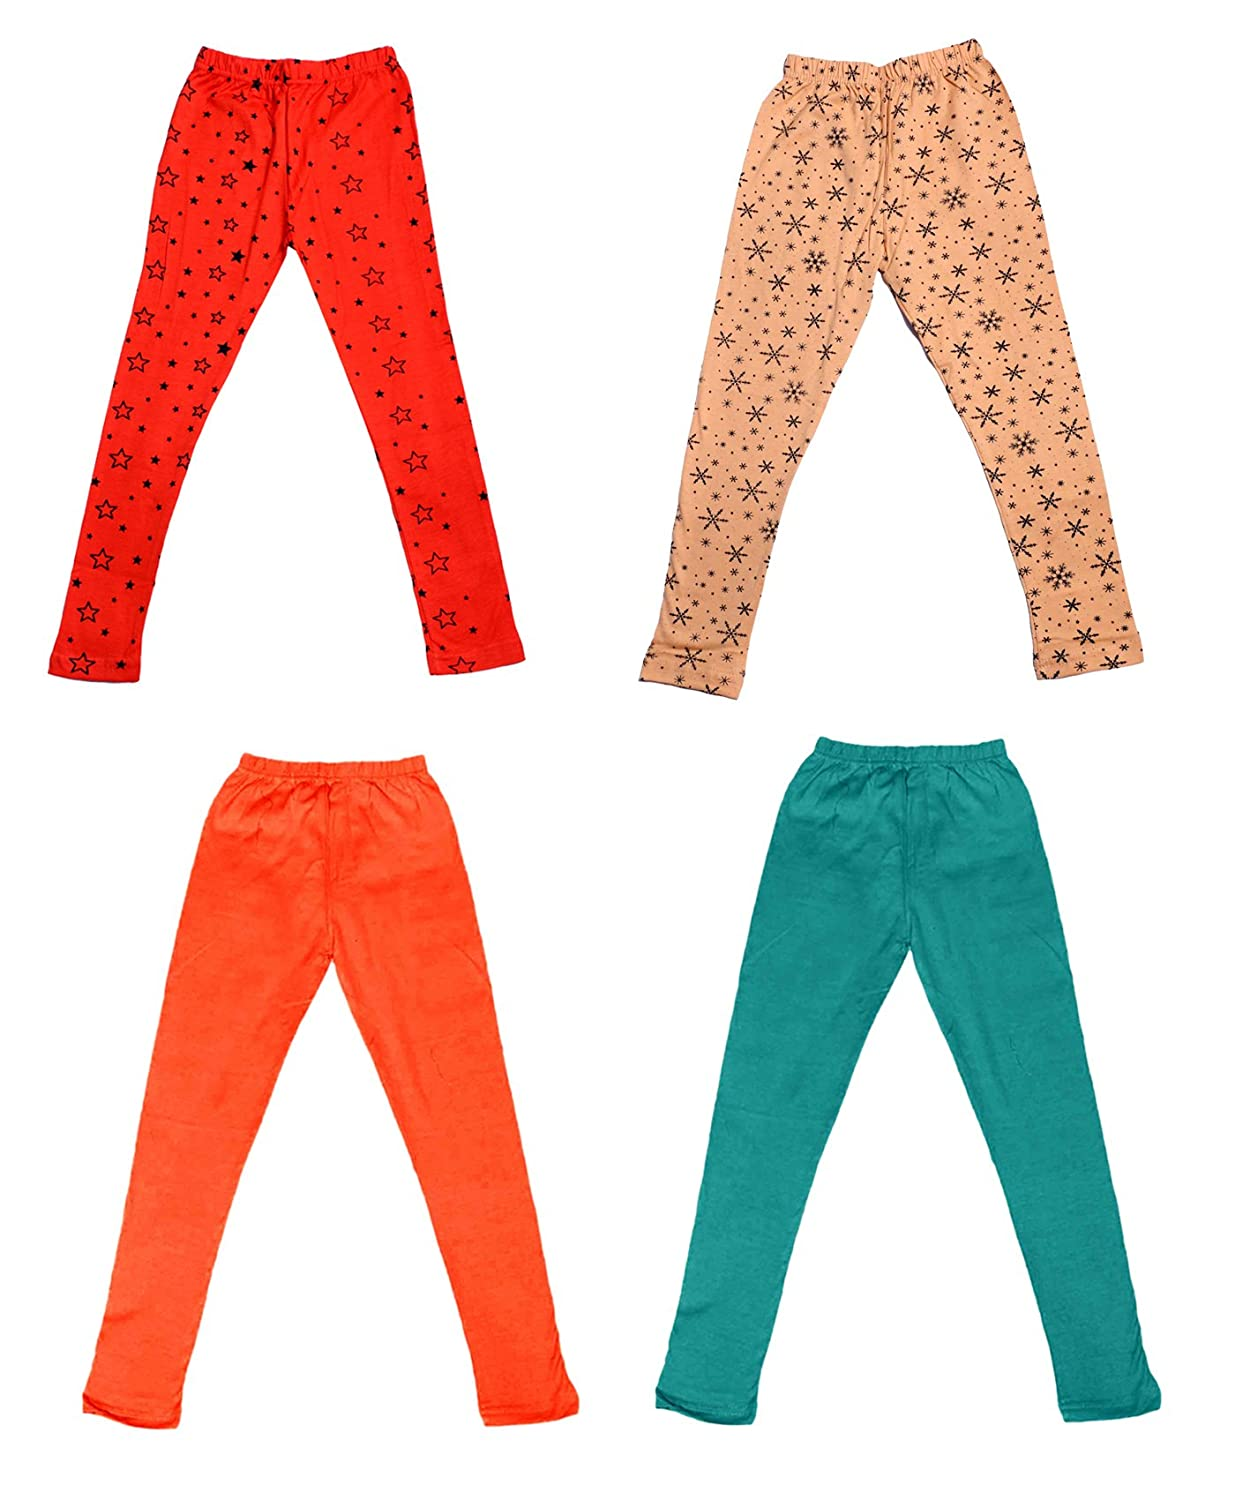 Pack Of 4 /_Multicolor/_Size-5-6 Years/_71414151619-IW-P4-28 and 2 Cotton Printed Legging Pants Indistar Girls 2 Cotton Solid Legging Pants